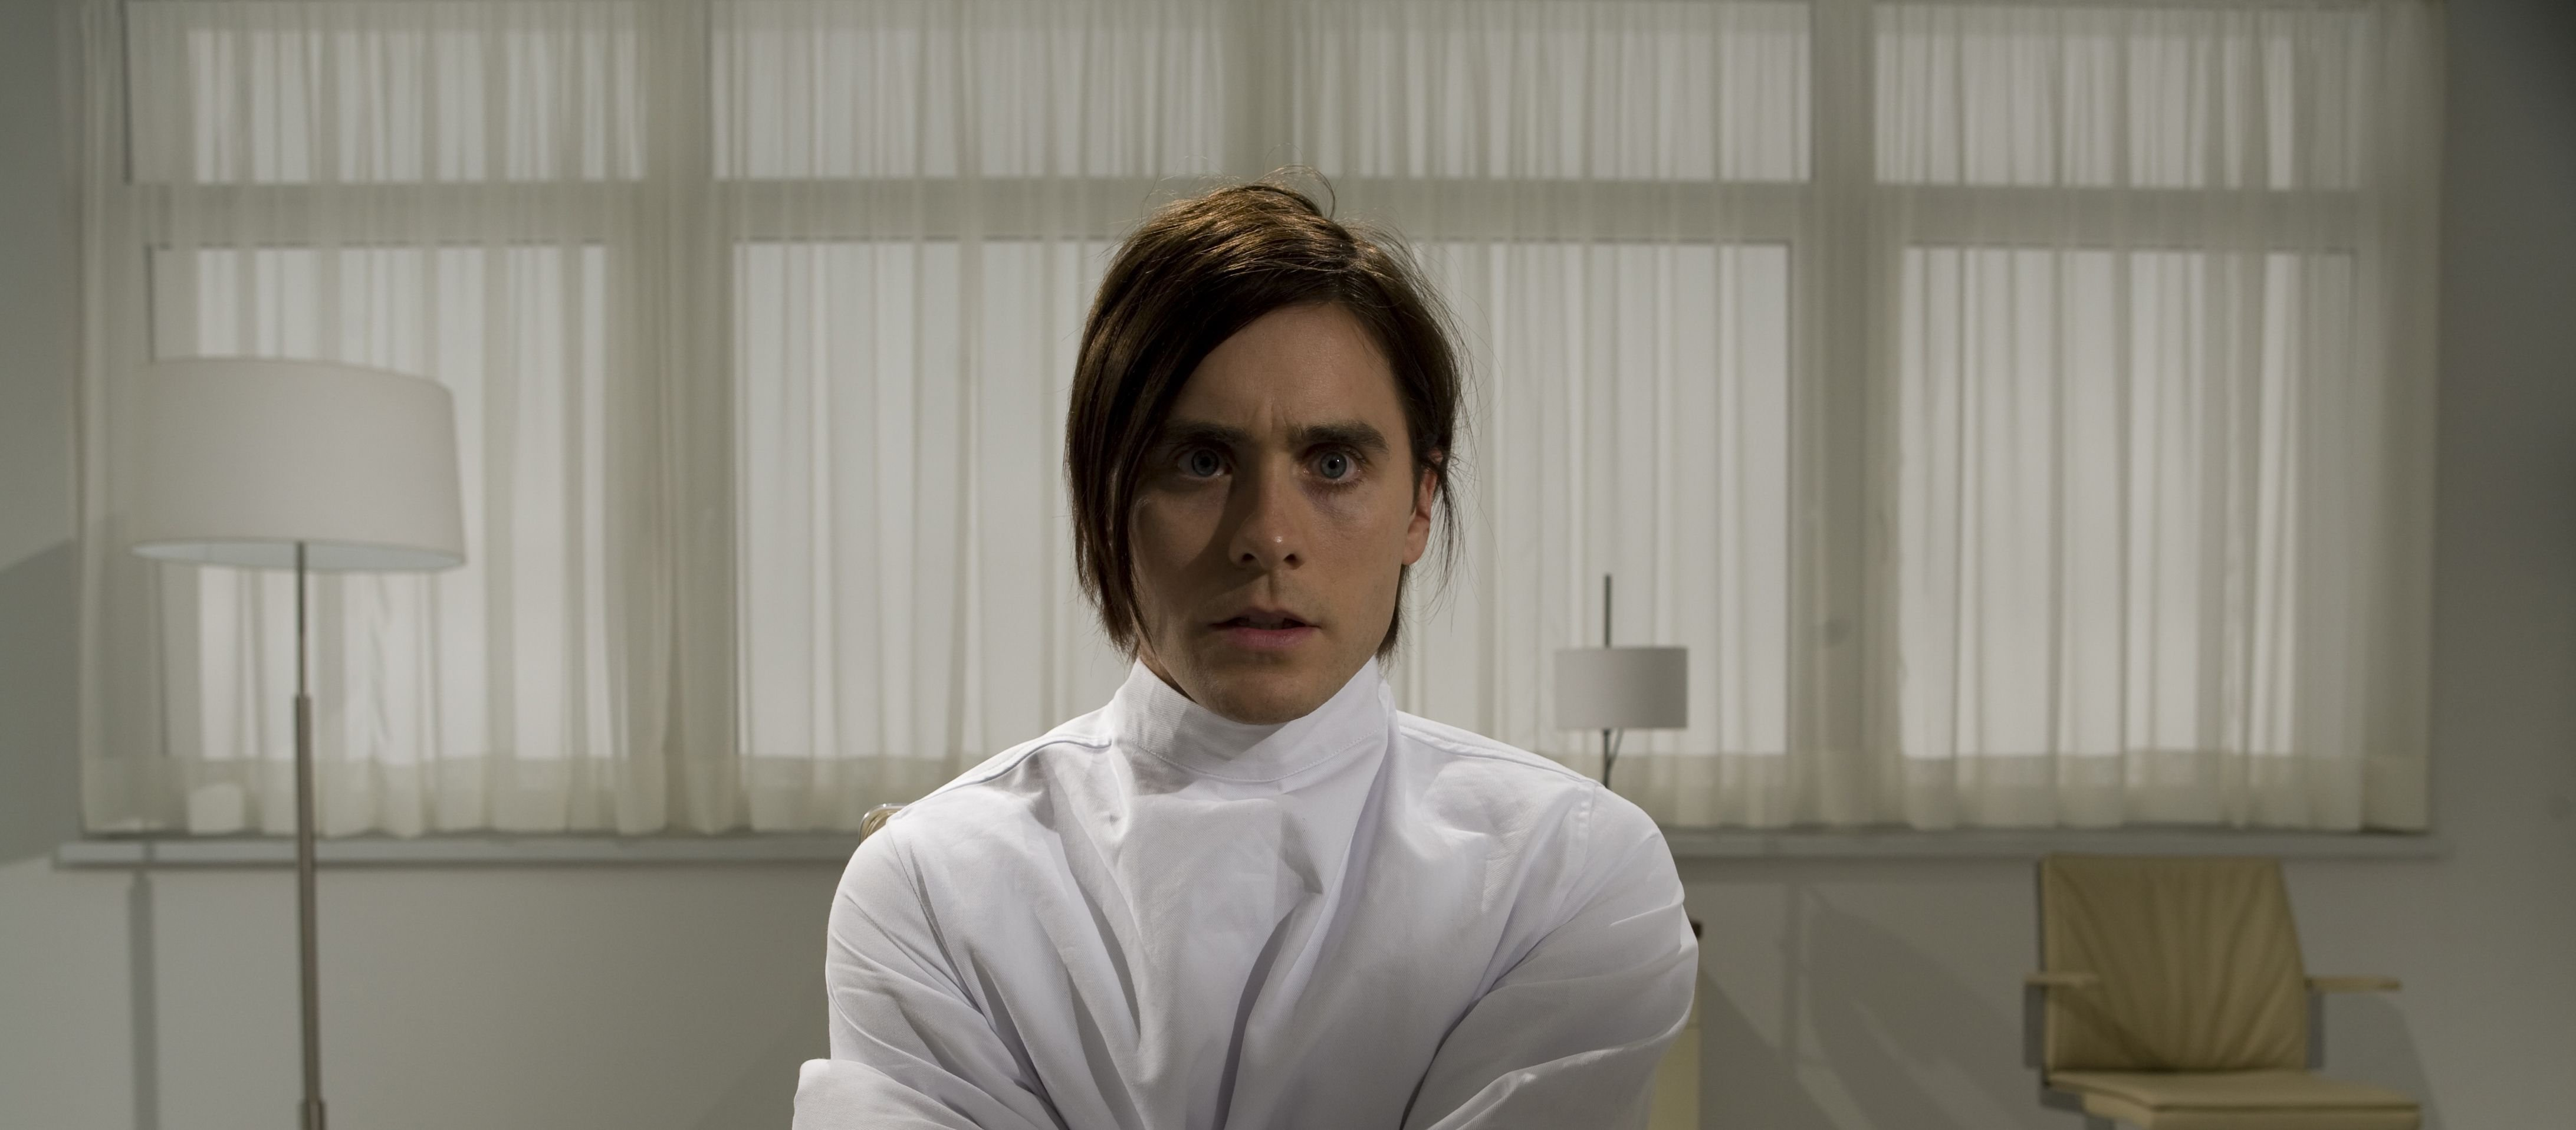 An image from Mr. Nobody